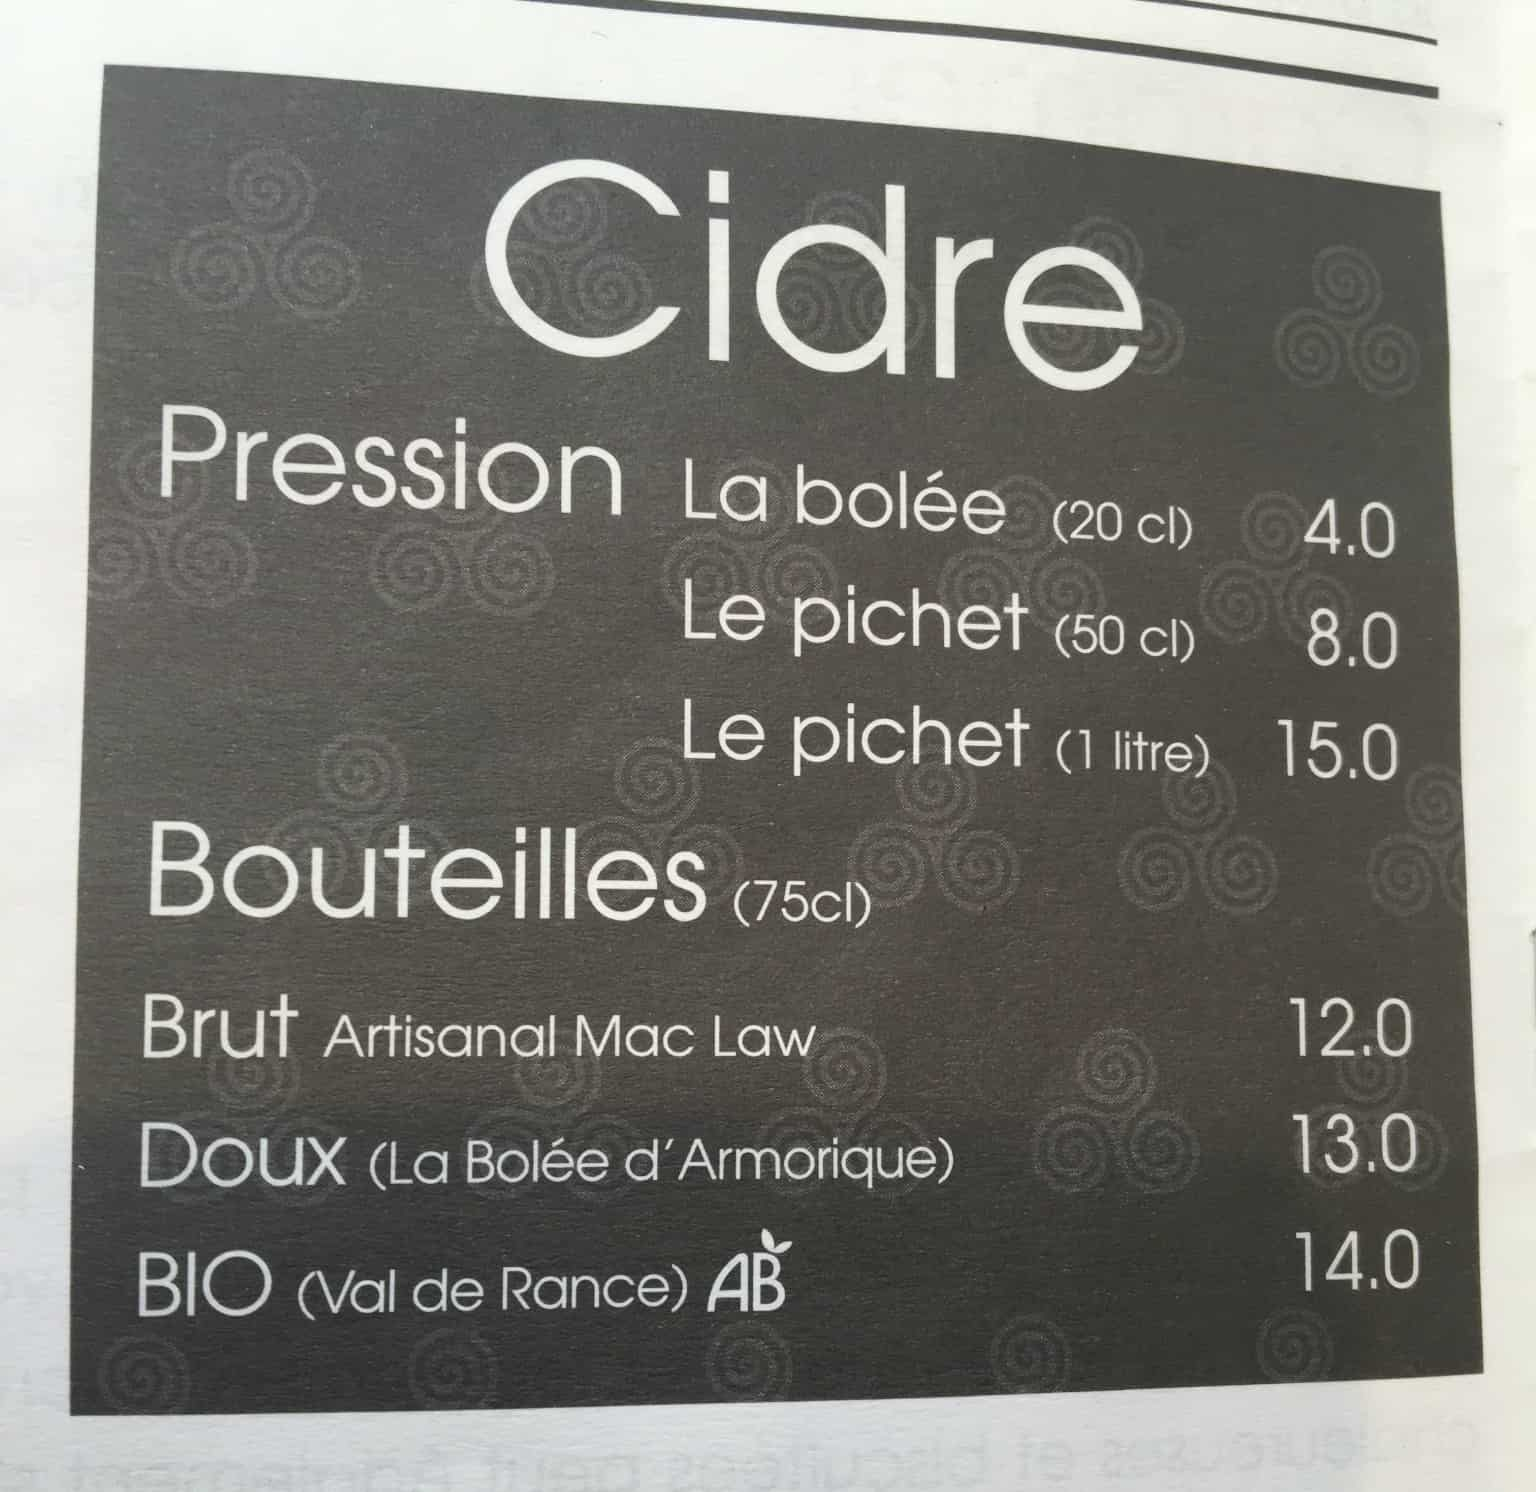 Normandy Cider menu cropped